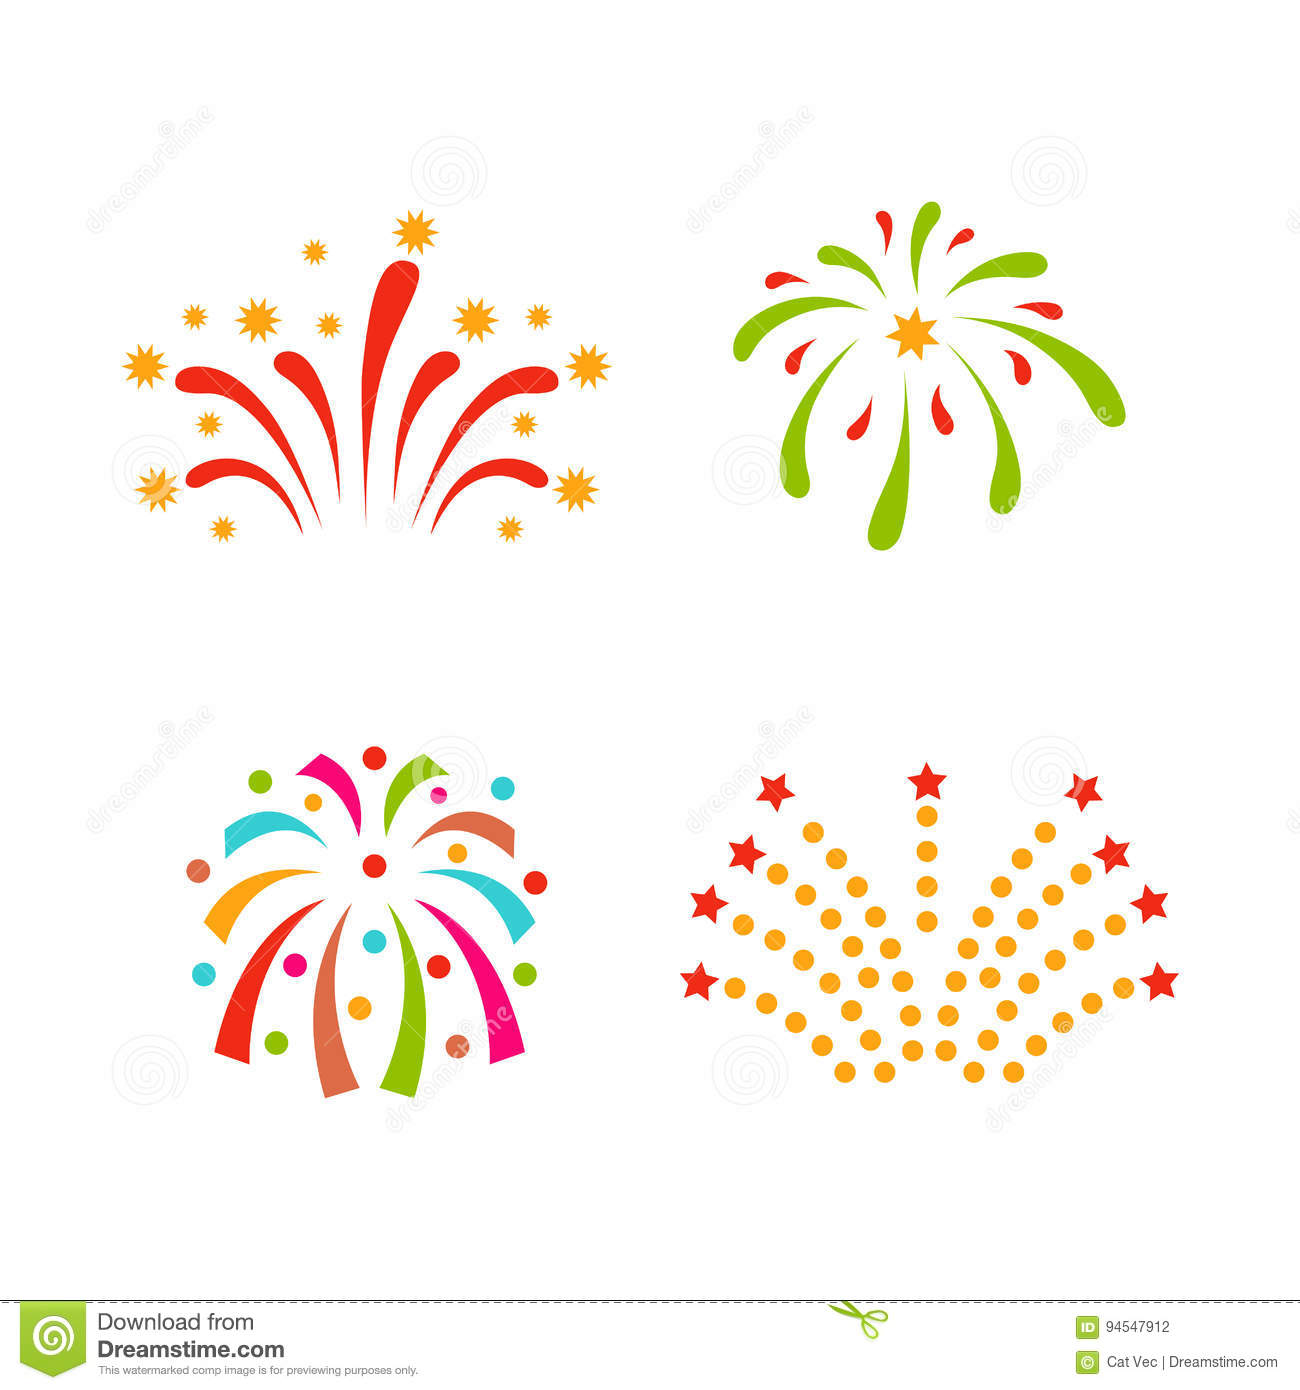 firework vector icon isolated illustration celebration holiday event night new year fire festival explosion light festive party fun birthday bright